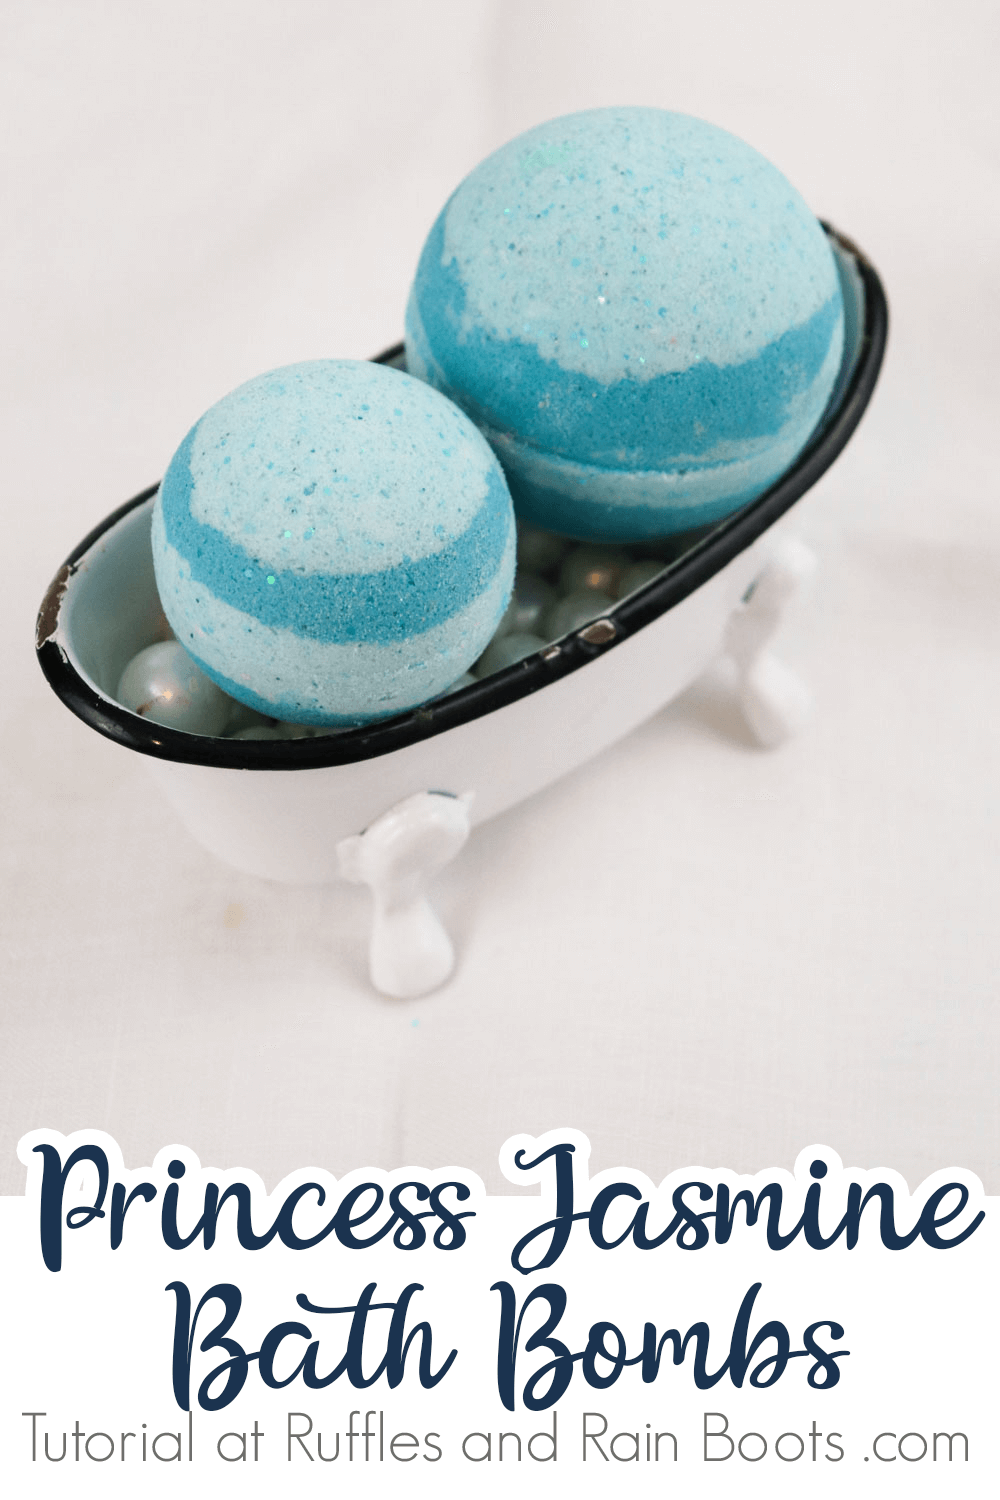 aladdin bath bomb recipe in a tiny bathtub on a white background with text which reads princess jasmine bath bombs